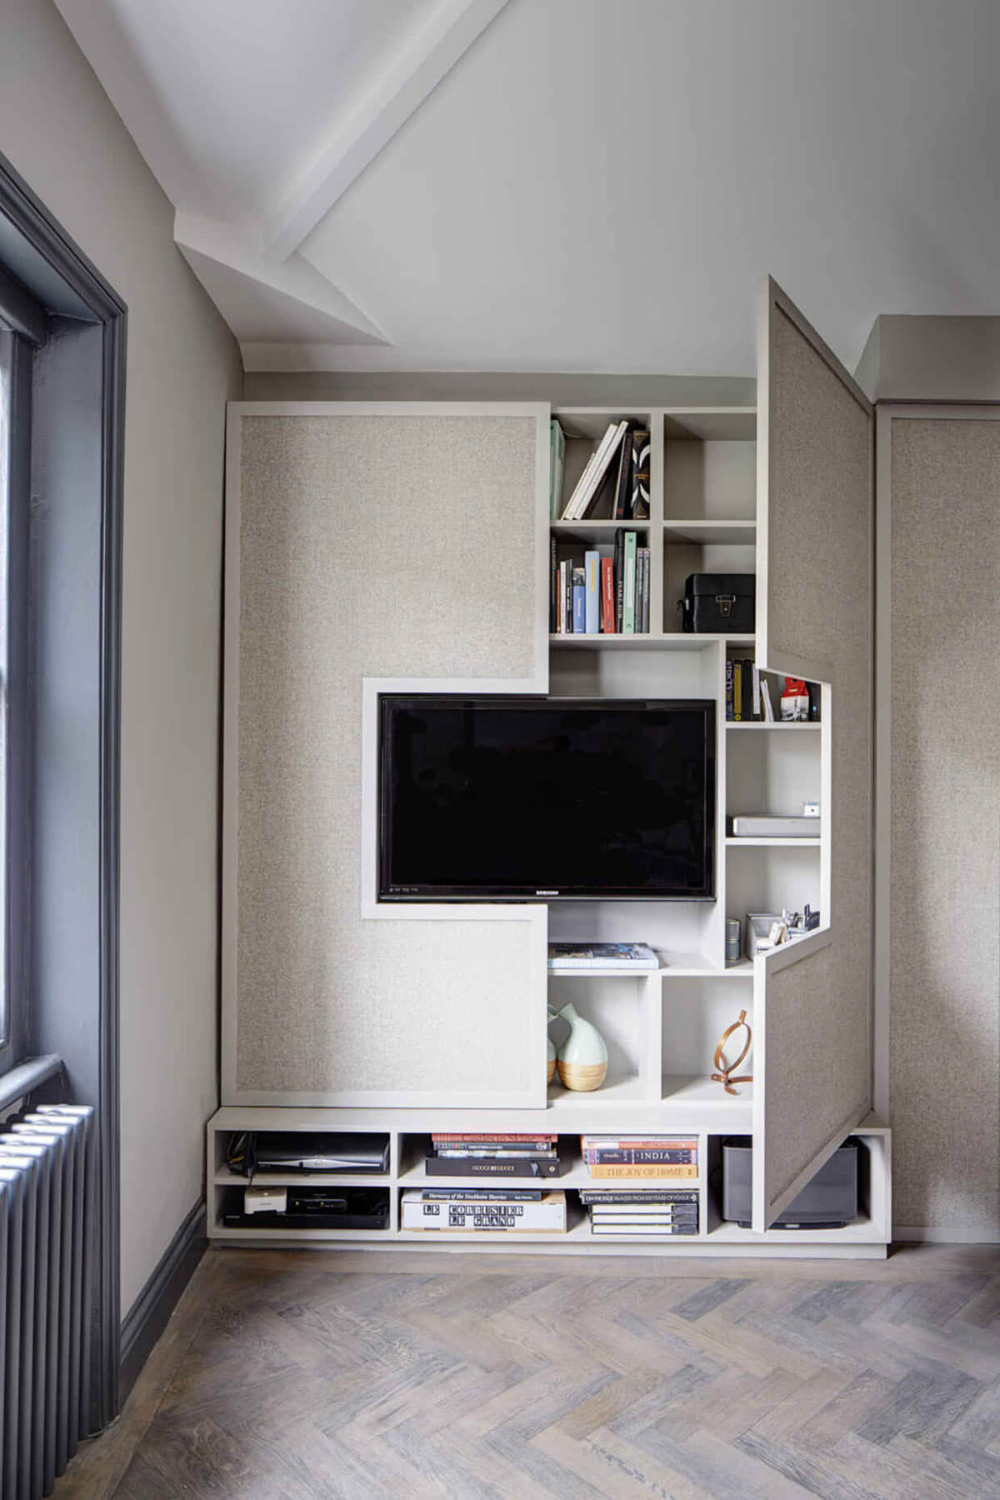 25 Fabulous Built In Storage Ideas To Maximize Your Living S